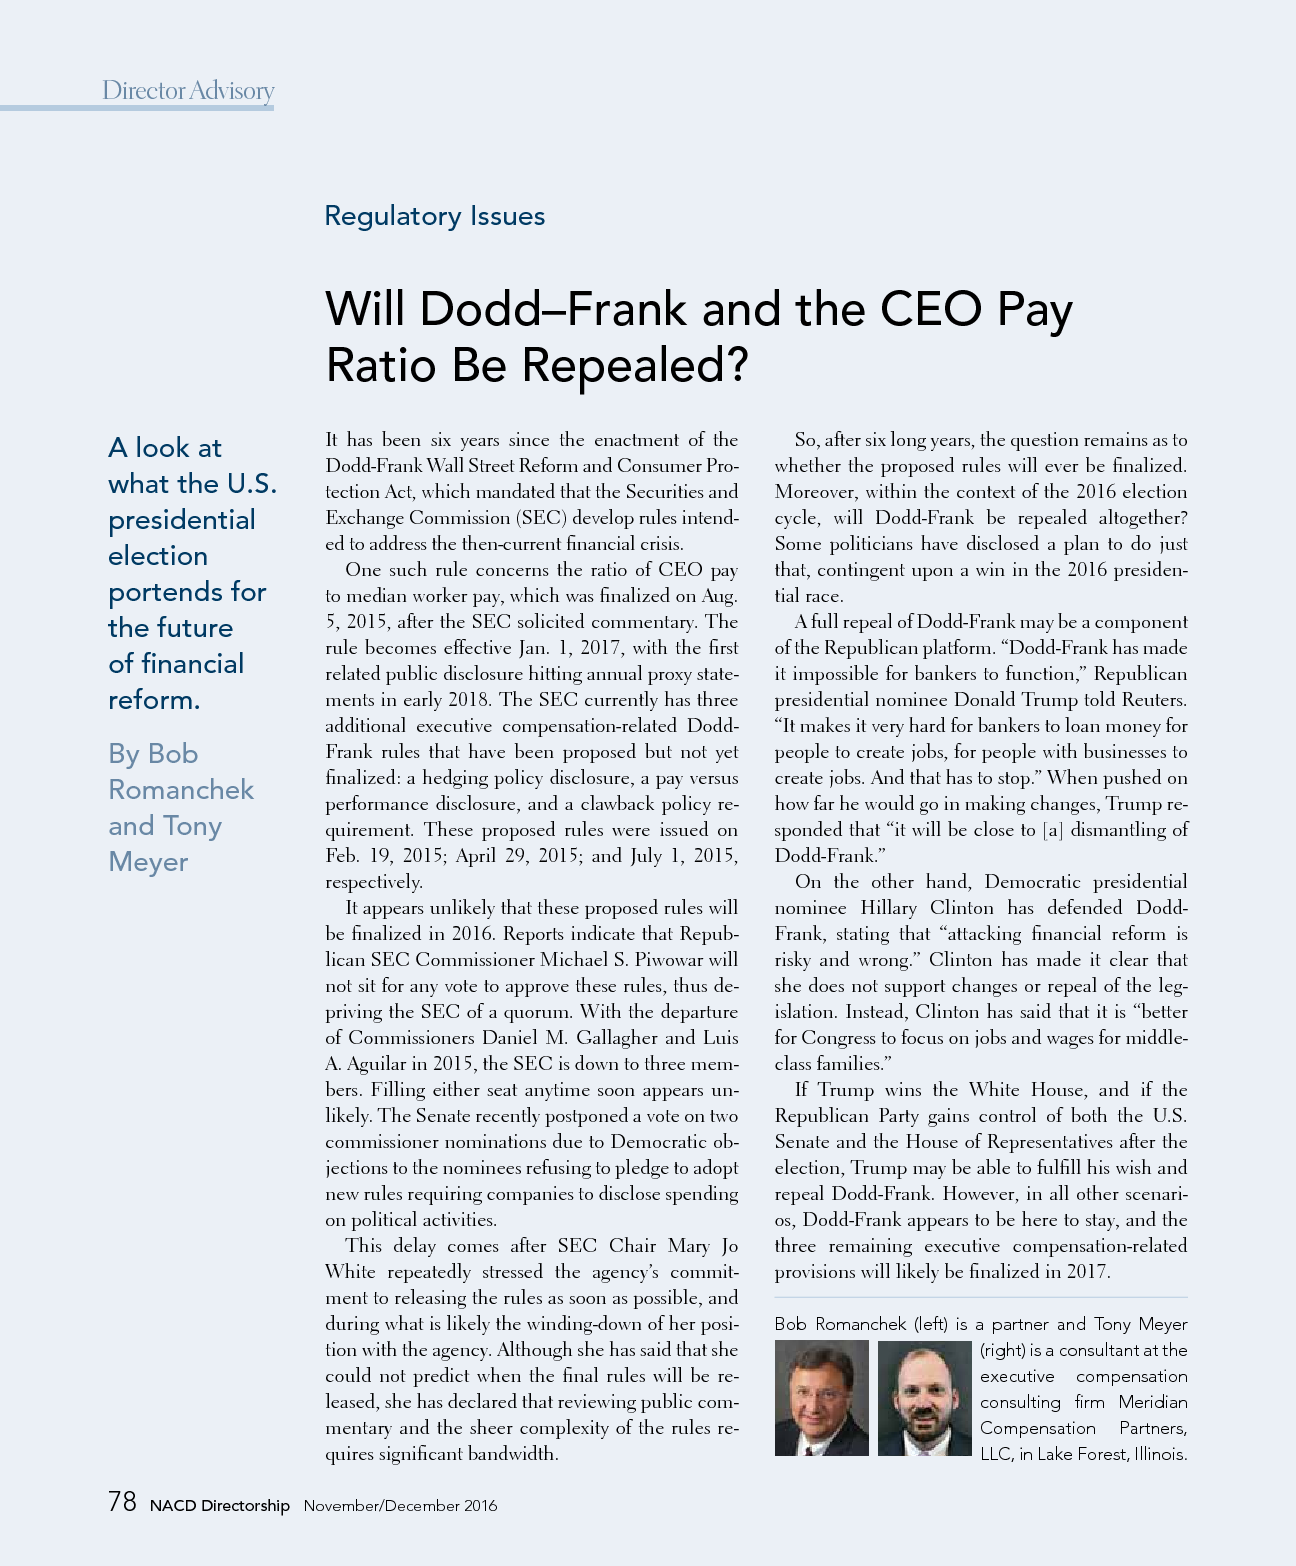 Will Dodd-Frank and the CEO Pay Ratio Be Repealed? (PDF)